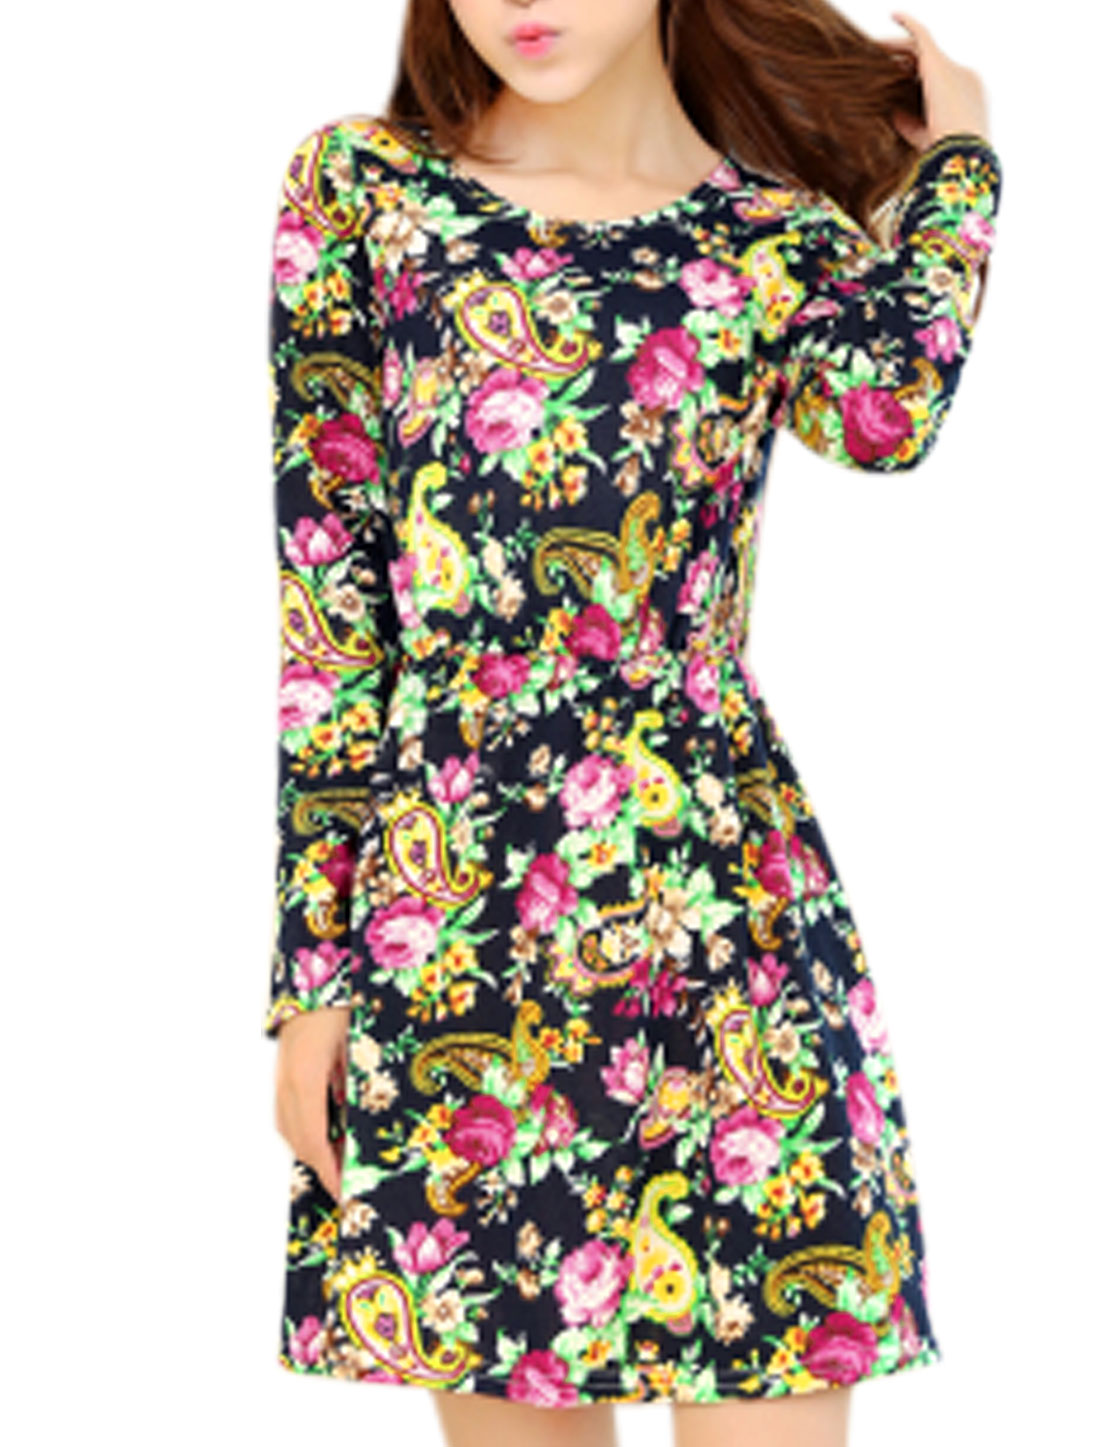 Lady Paisleys Floral Pattern Elastic Waist Long Sleeve Short Dress Multicolor XS